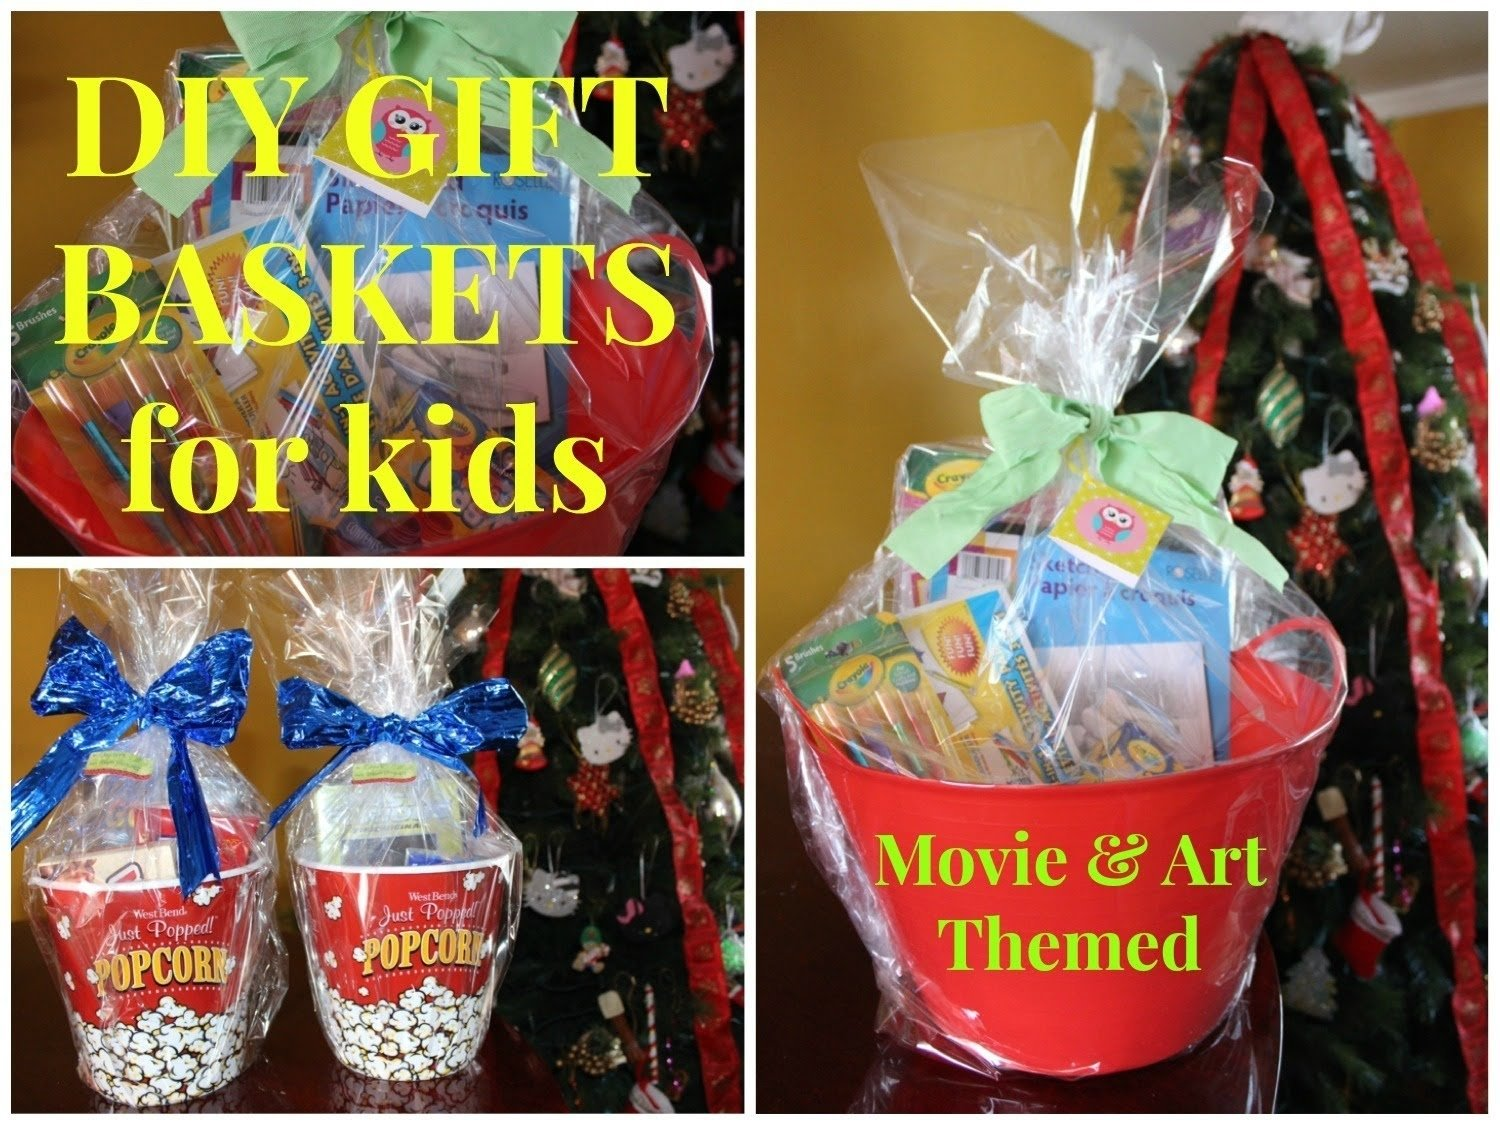 10 Fashionable Gift Basket Ideas For Kids diy movie art themed gift baskets for kids budget friendly youtube 2